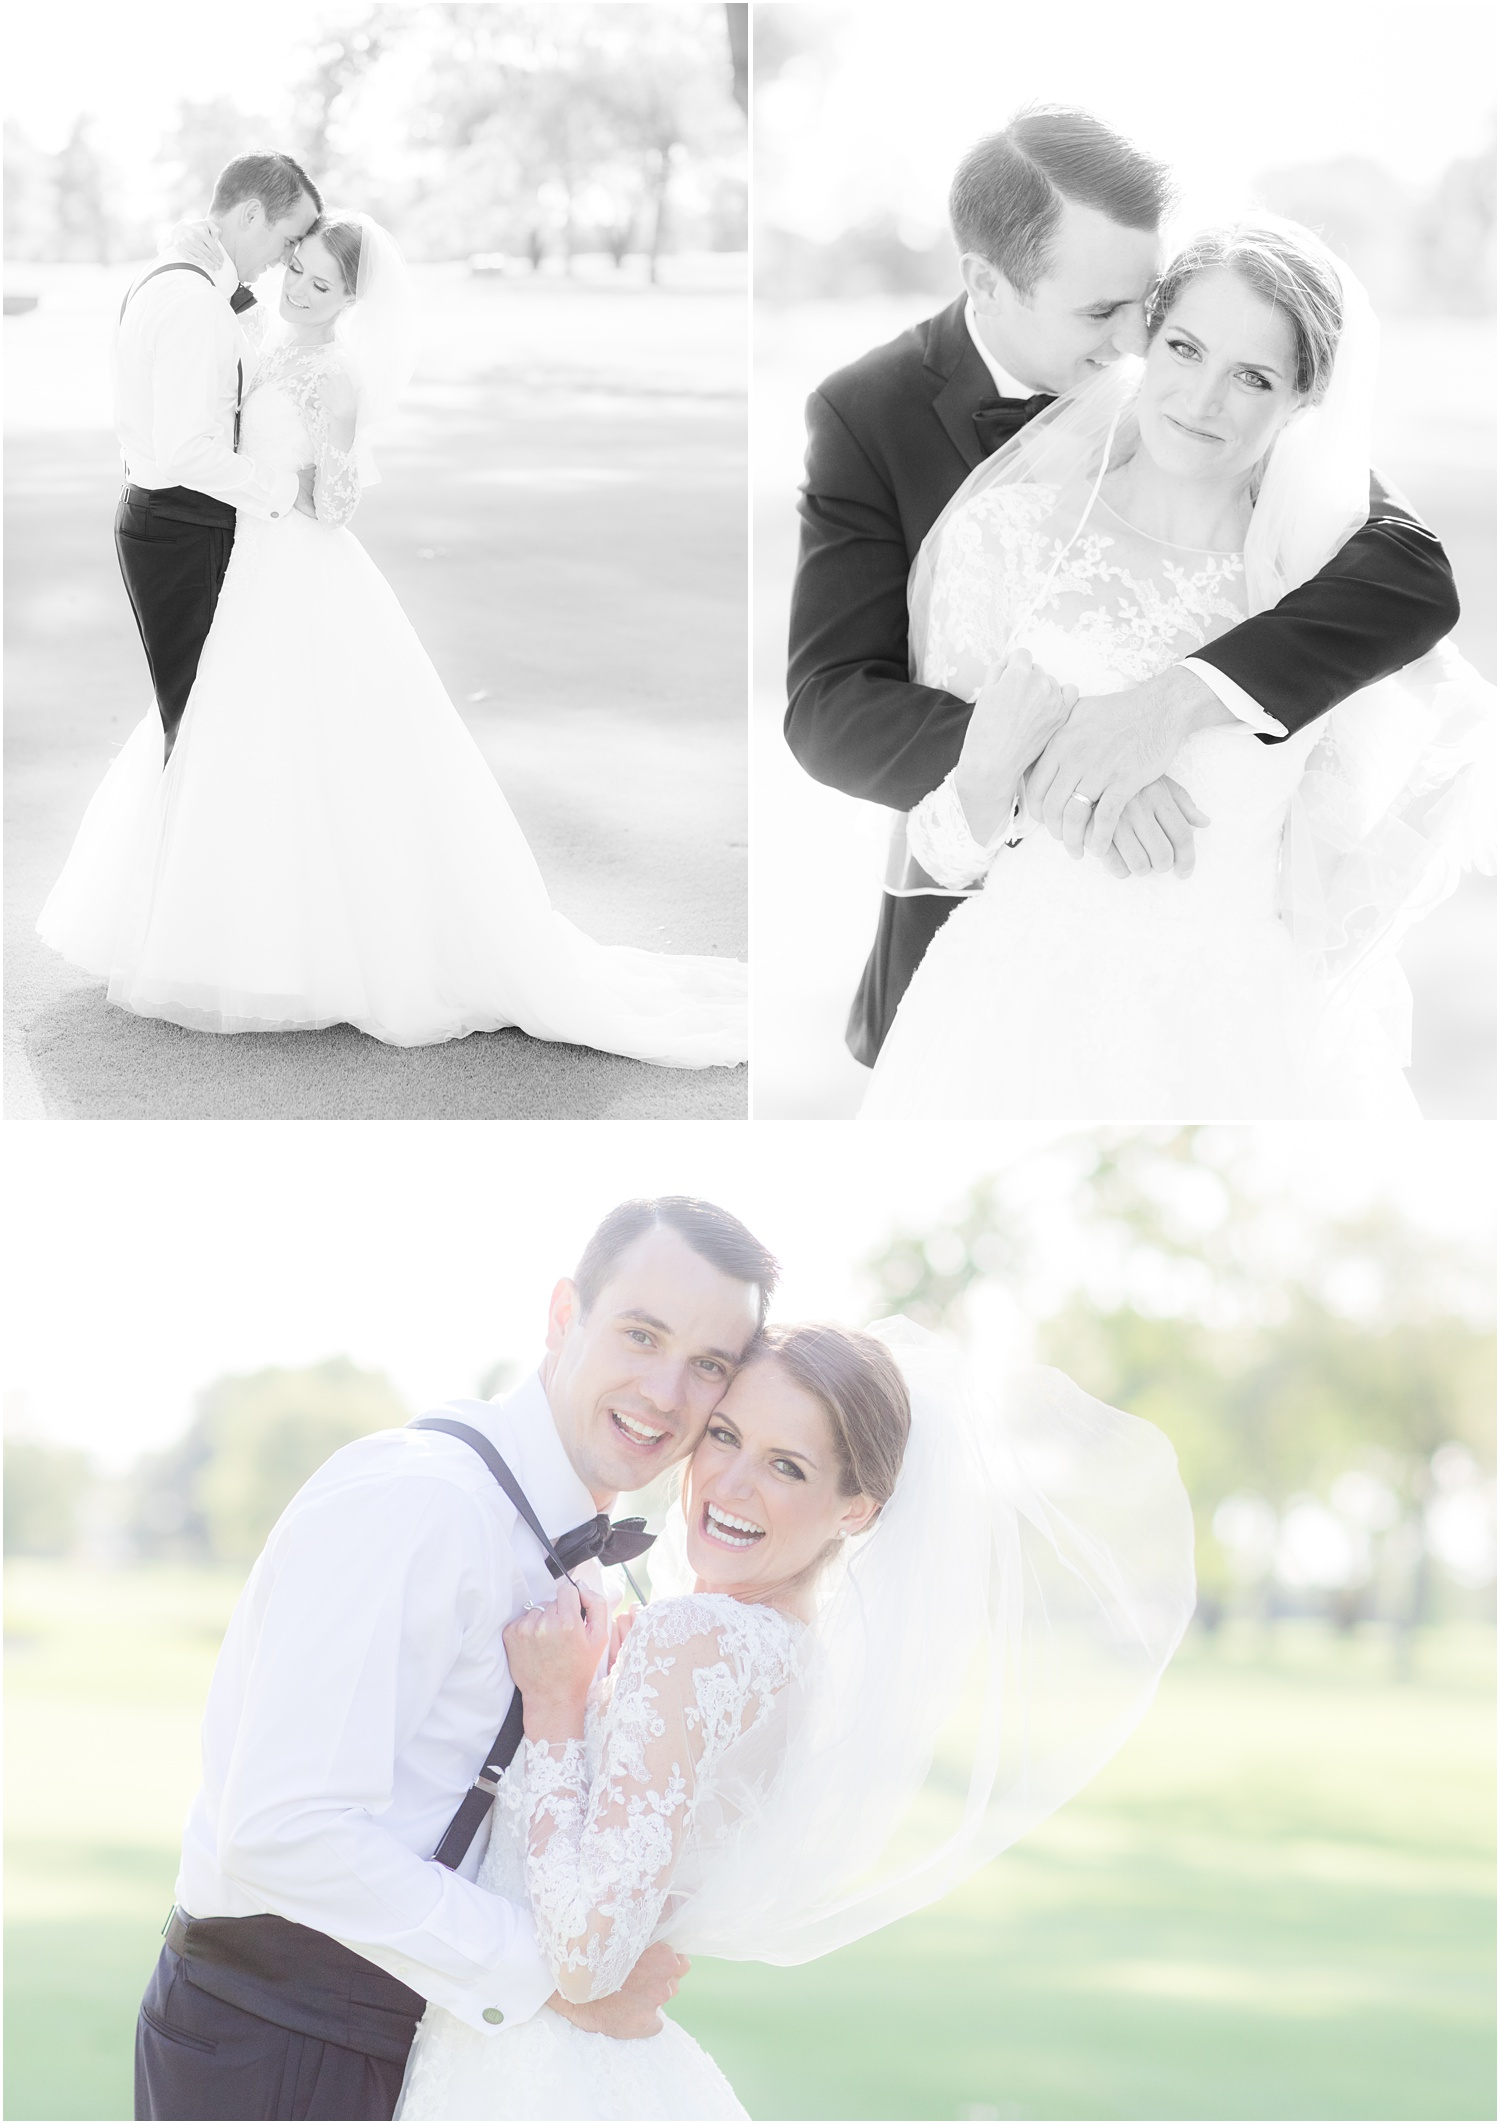 Romantic bride and groom photos at Canoe Brook Country Club